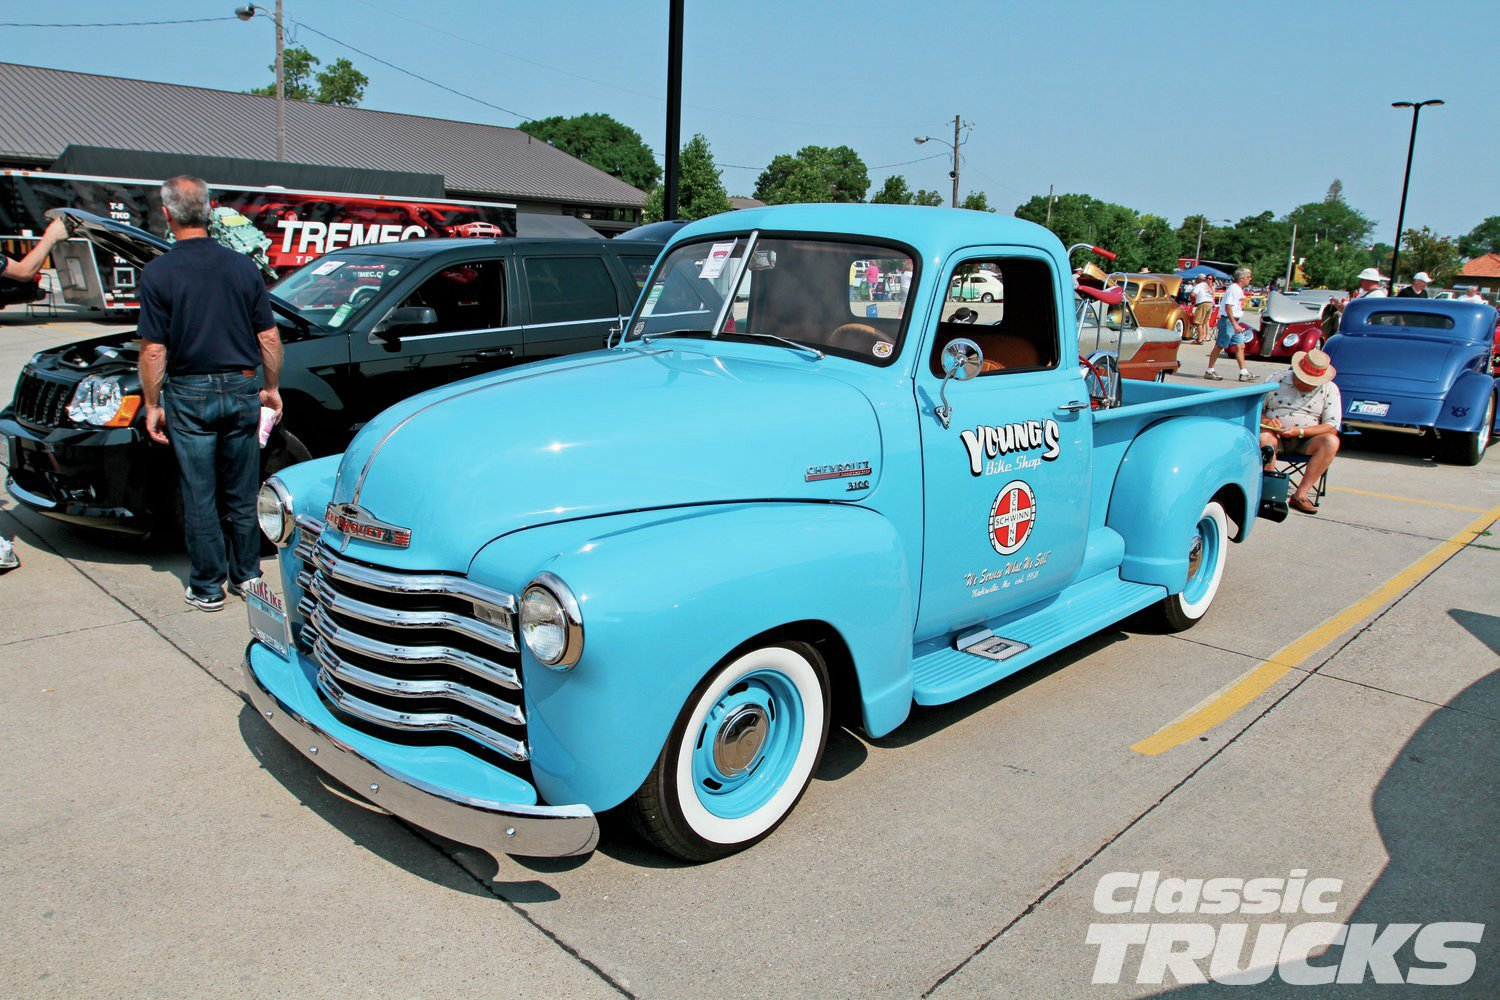 Bob Young's '47 Chevy pickup built by Karl Kustoms of Des Moines, Iowa. Bob built the truck as a tribute to his parents' bicycle business. What an amazing tribute to his folks.